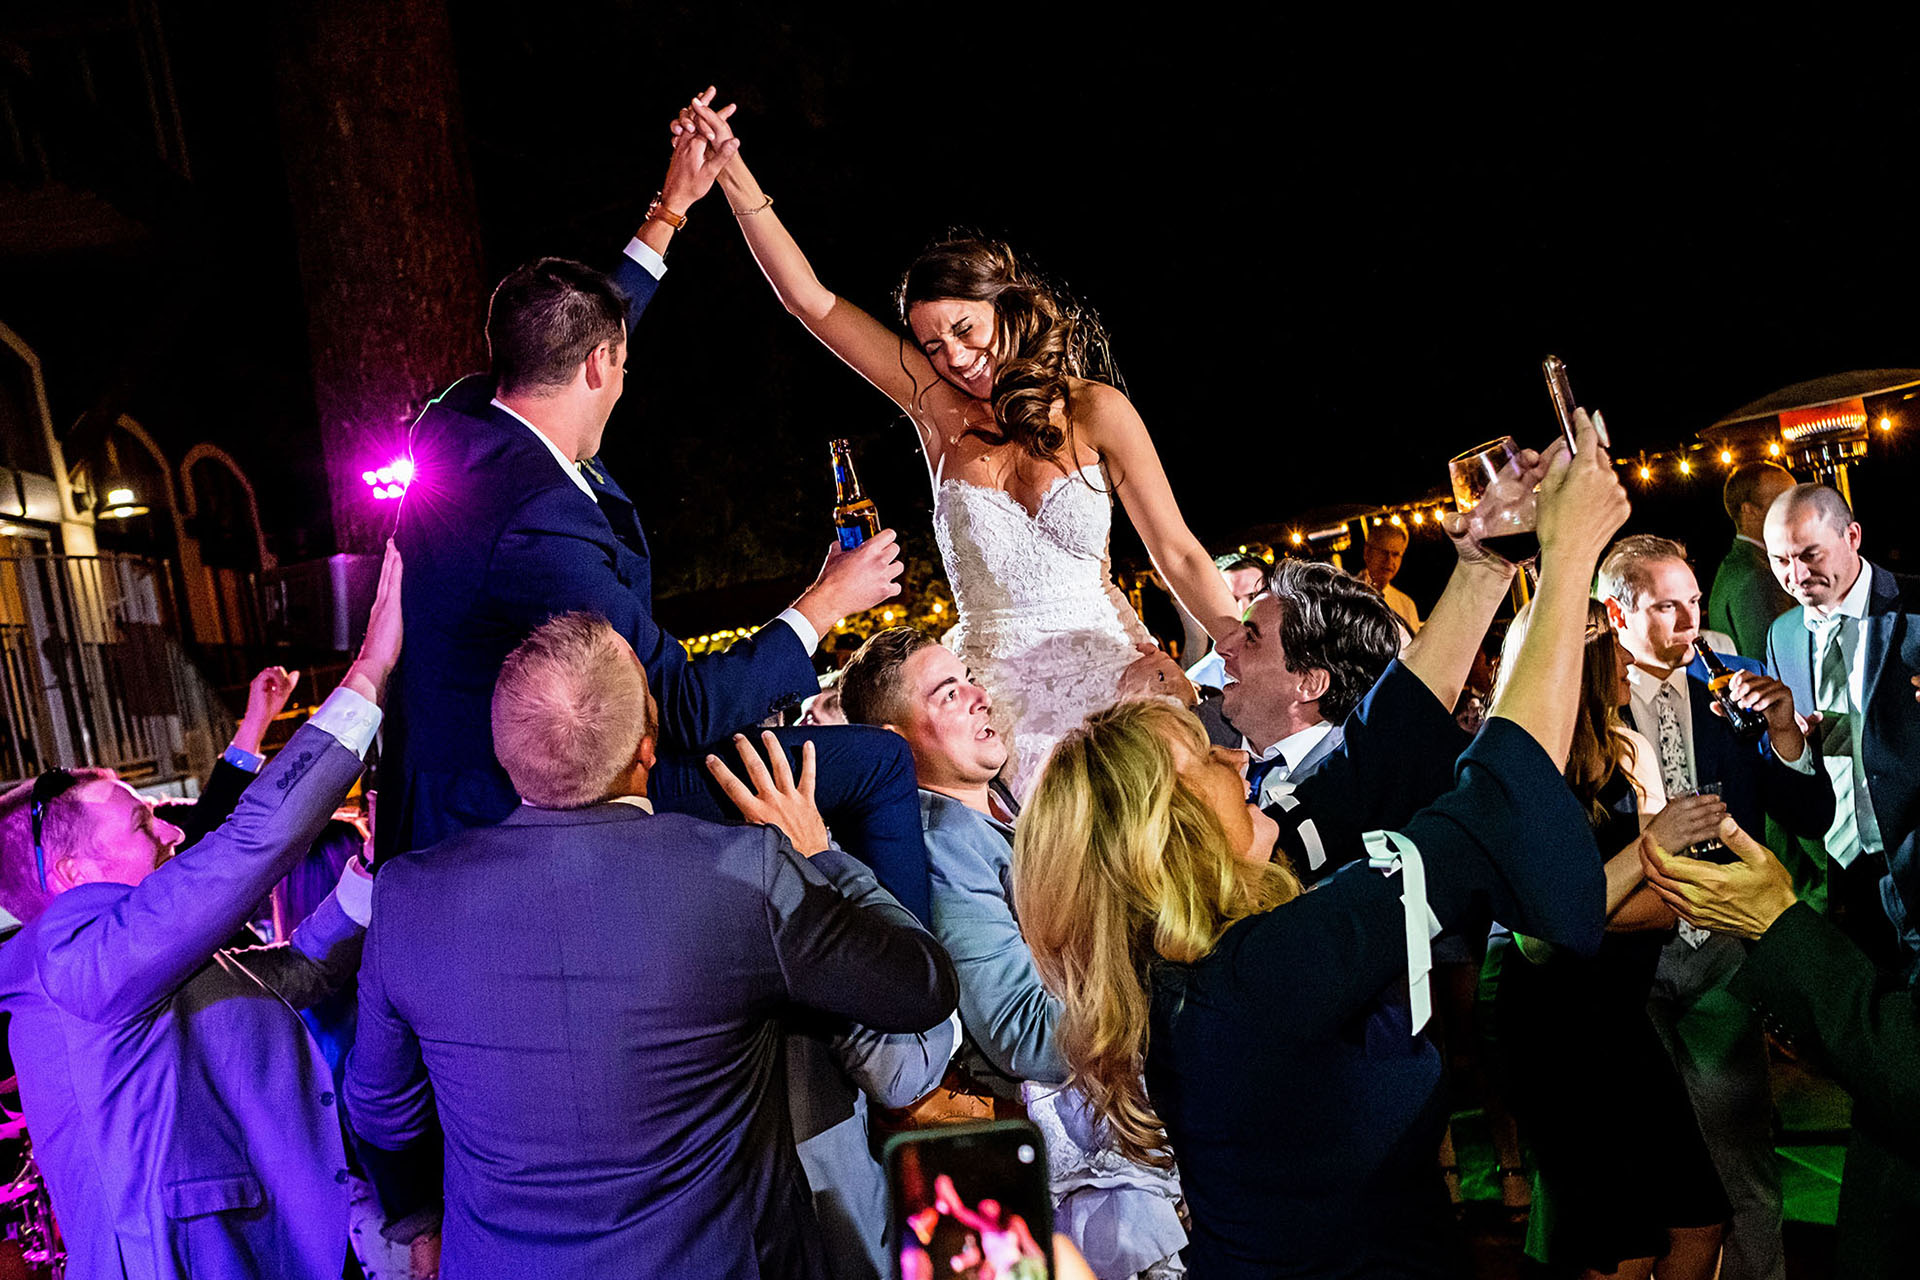 Wedding Photos at Reception - Bride and Groom are lifted up in celebration